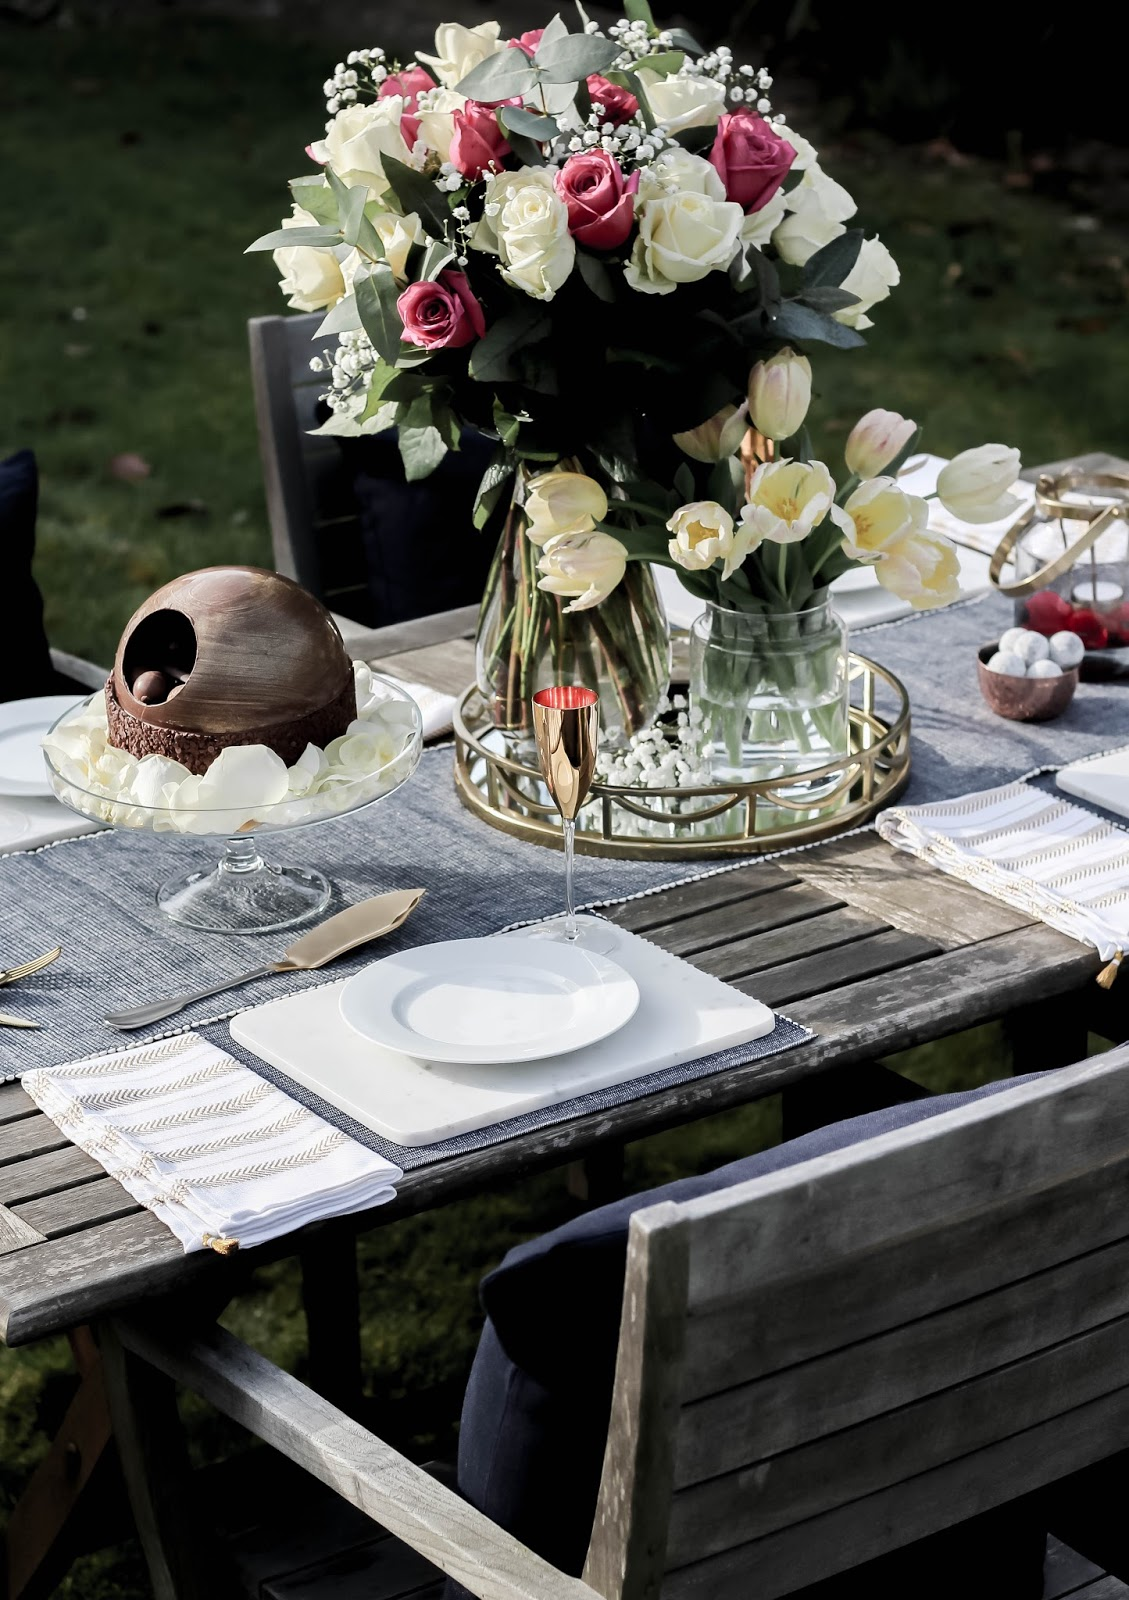 Lifestyle Blog Mother's Day Floral Display Tips Table Setting